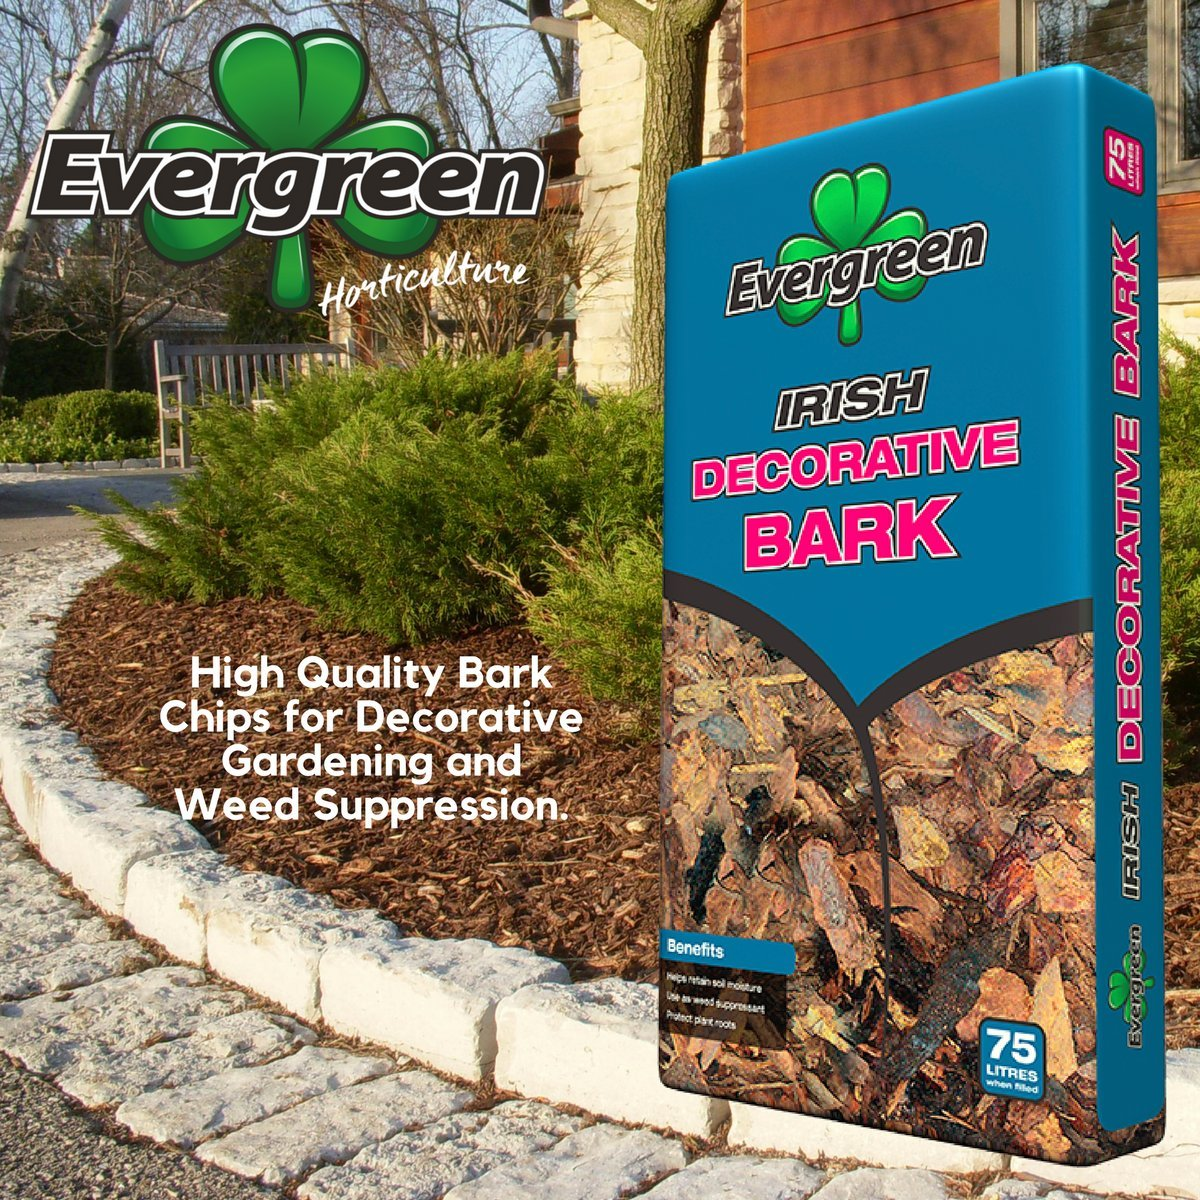 Evergreen Decorative Chip Bark 75 Ltr - 3 x 75 Ltr Large Bags Evergreen Horticulture